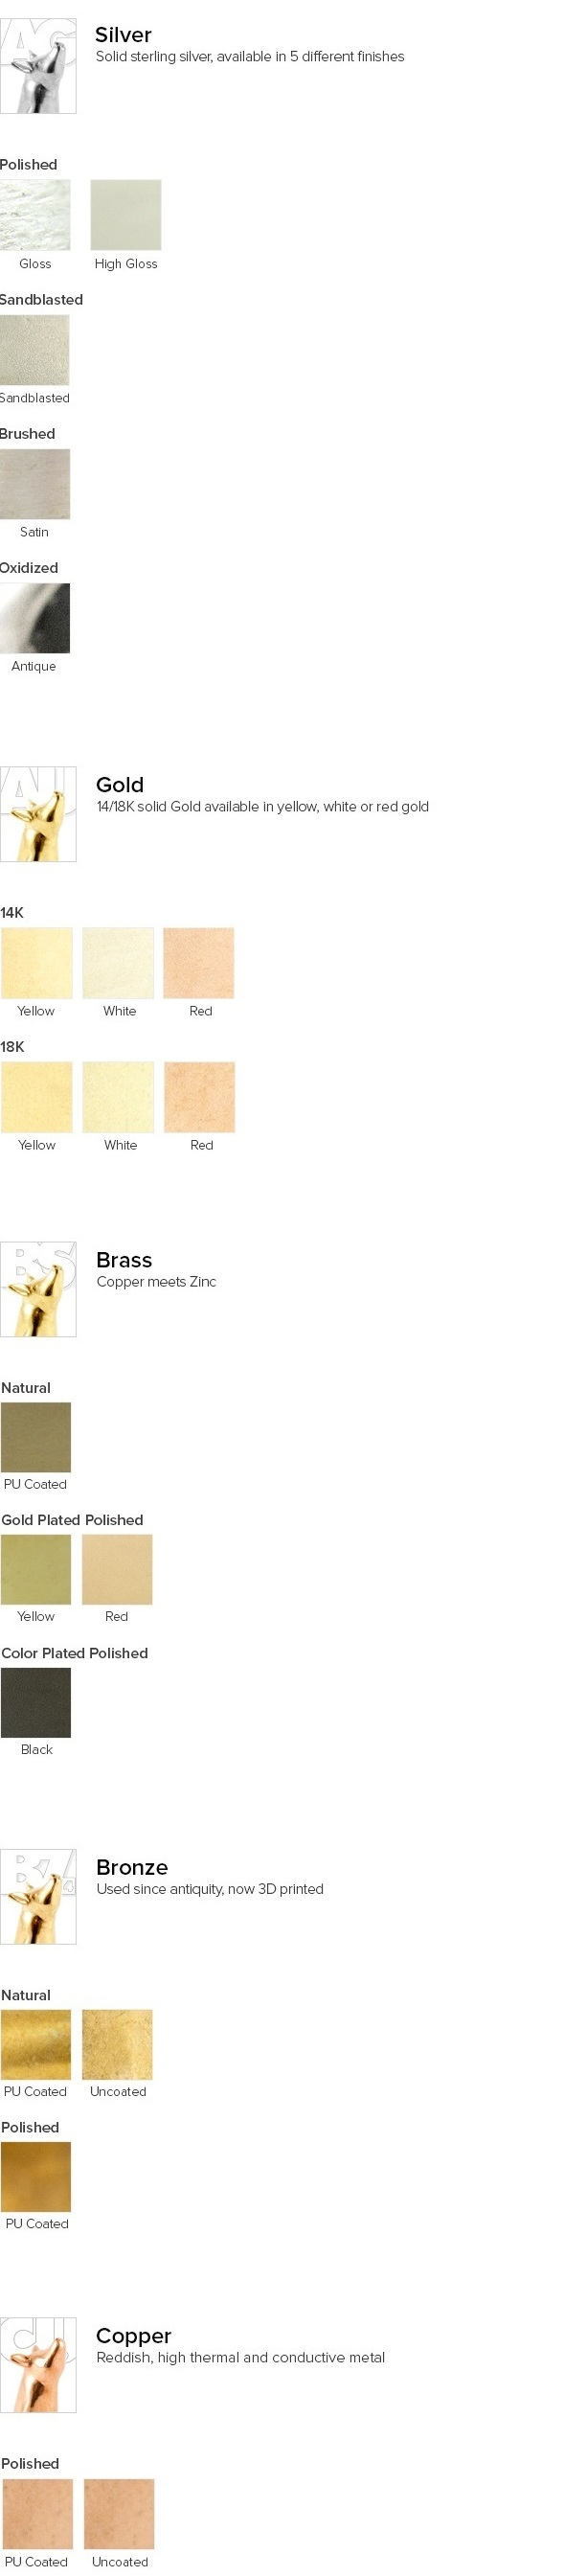 3D printing in Gold, Silver, Copper and Bronze: 100 3D printing materials explained